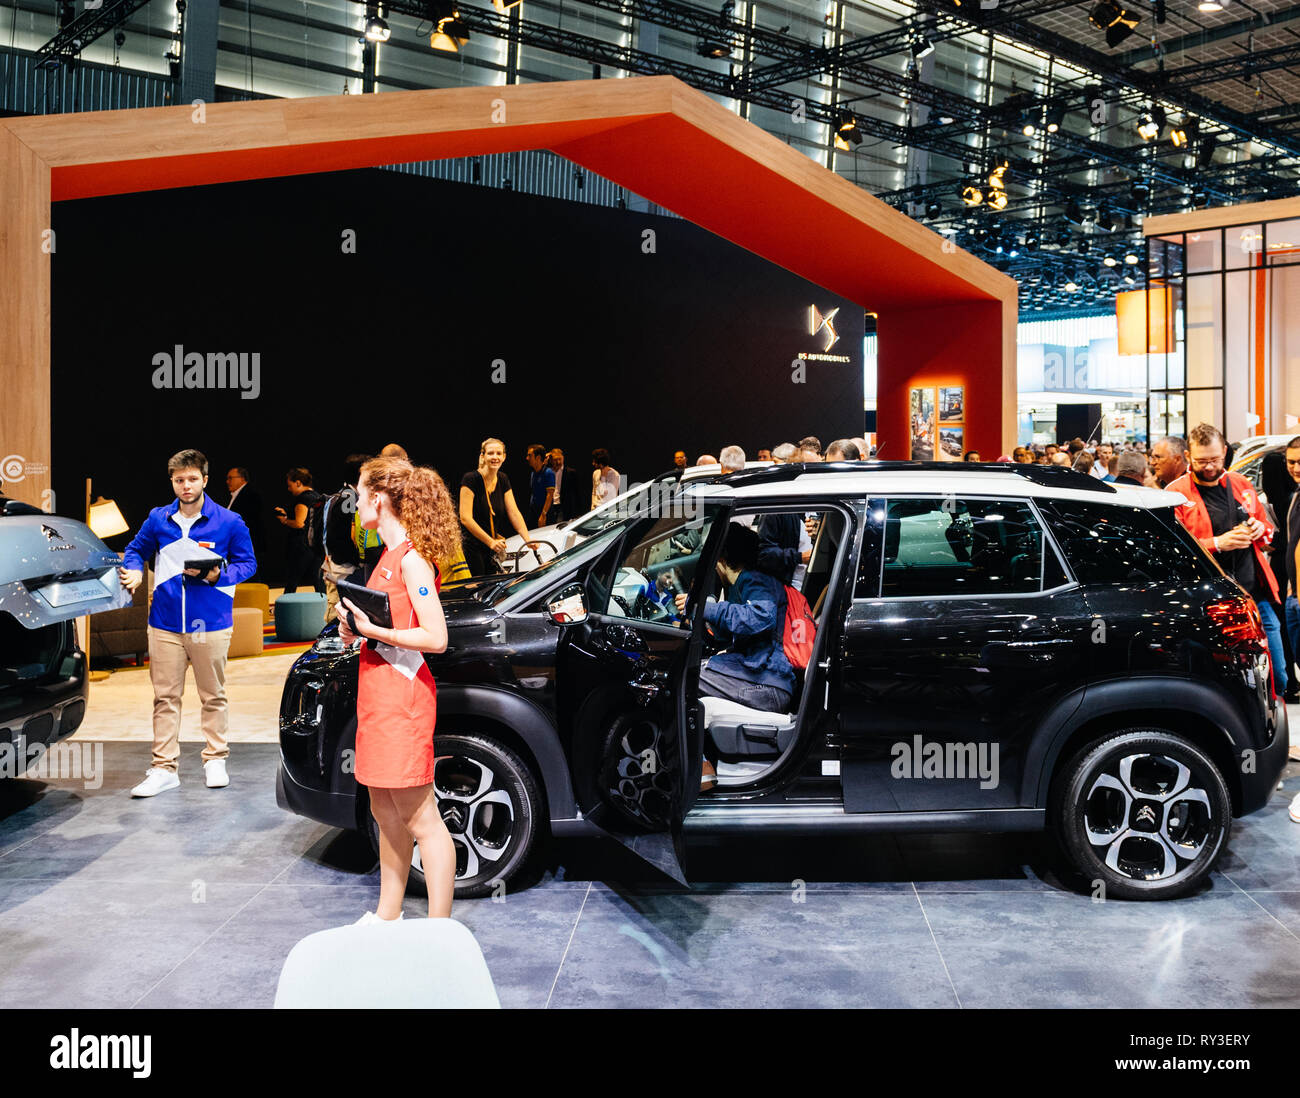 PARIS, FRANCE - OCT 4, 2018: Customers and curious people admiring the new Hybrid Citroen SUV family car at International car exhibition Mondial Paris Motor Show, model produced by French  car maker - Stock Image